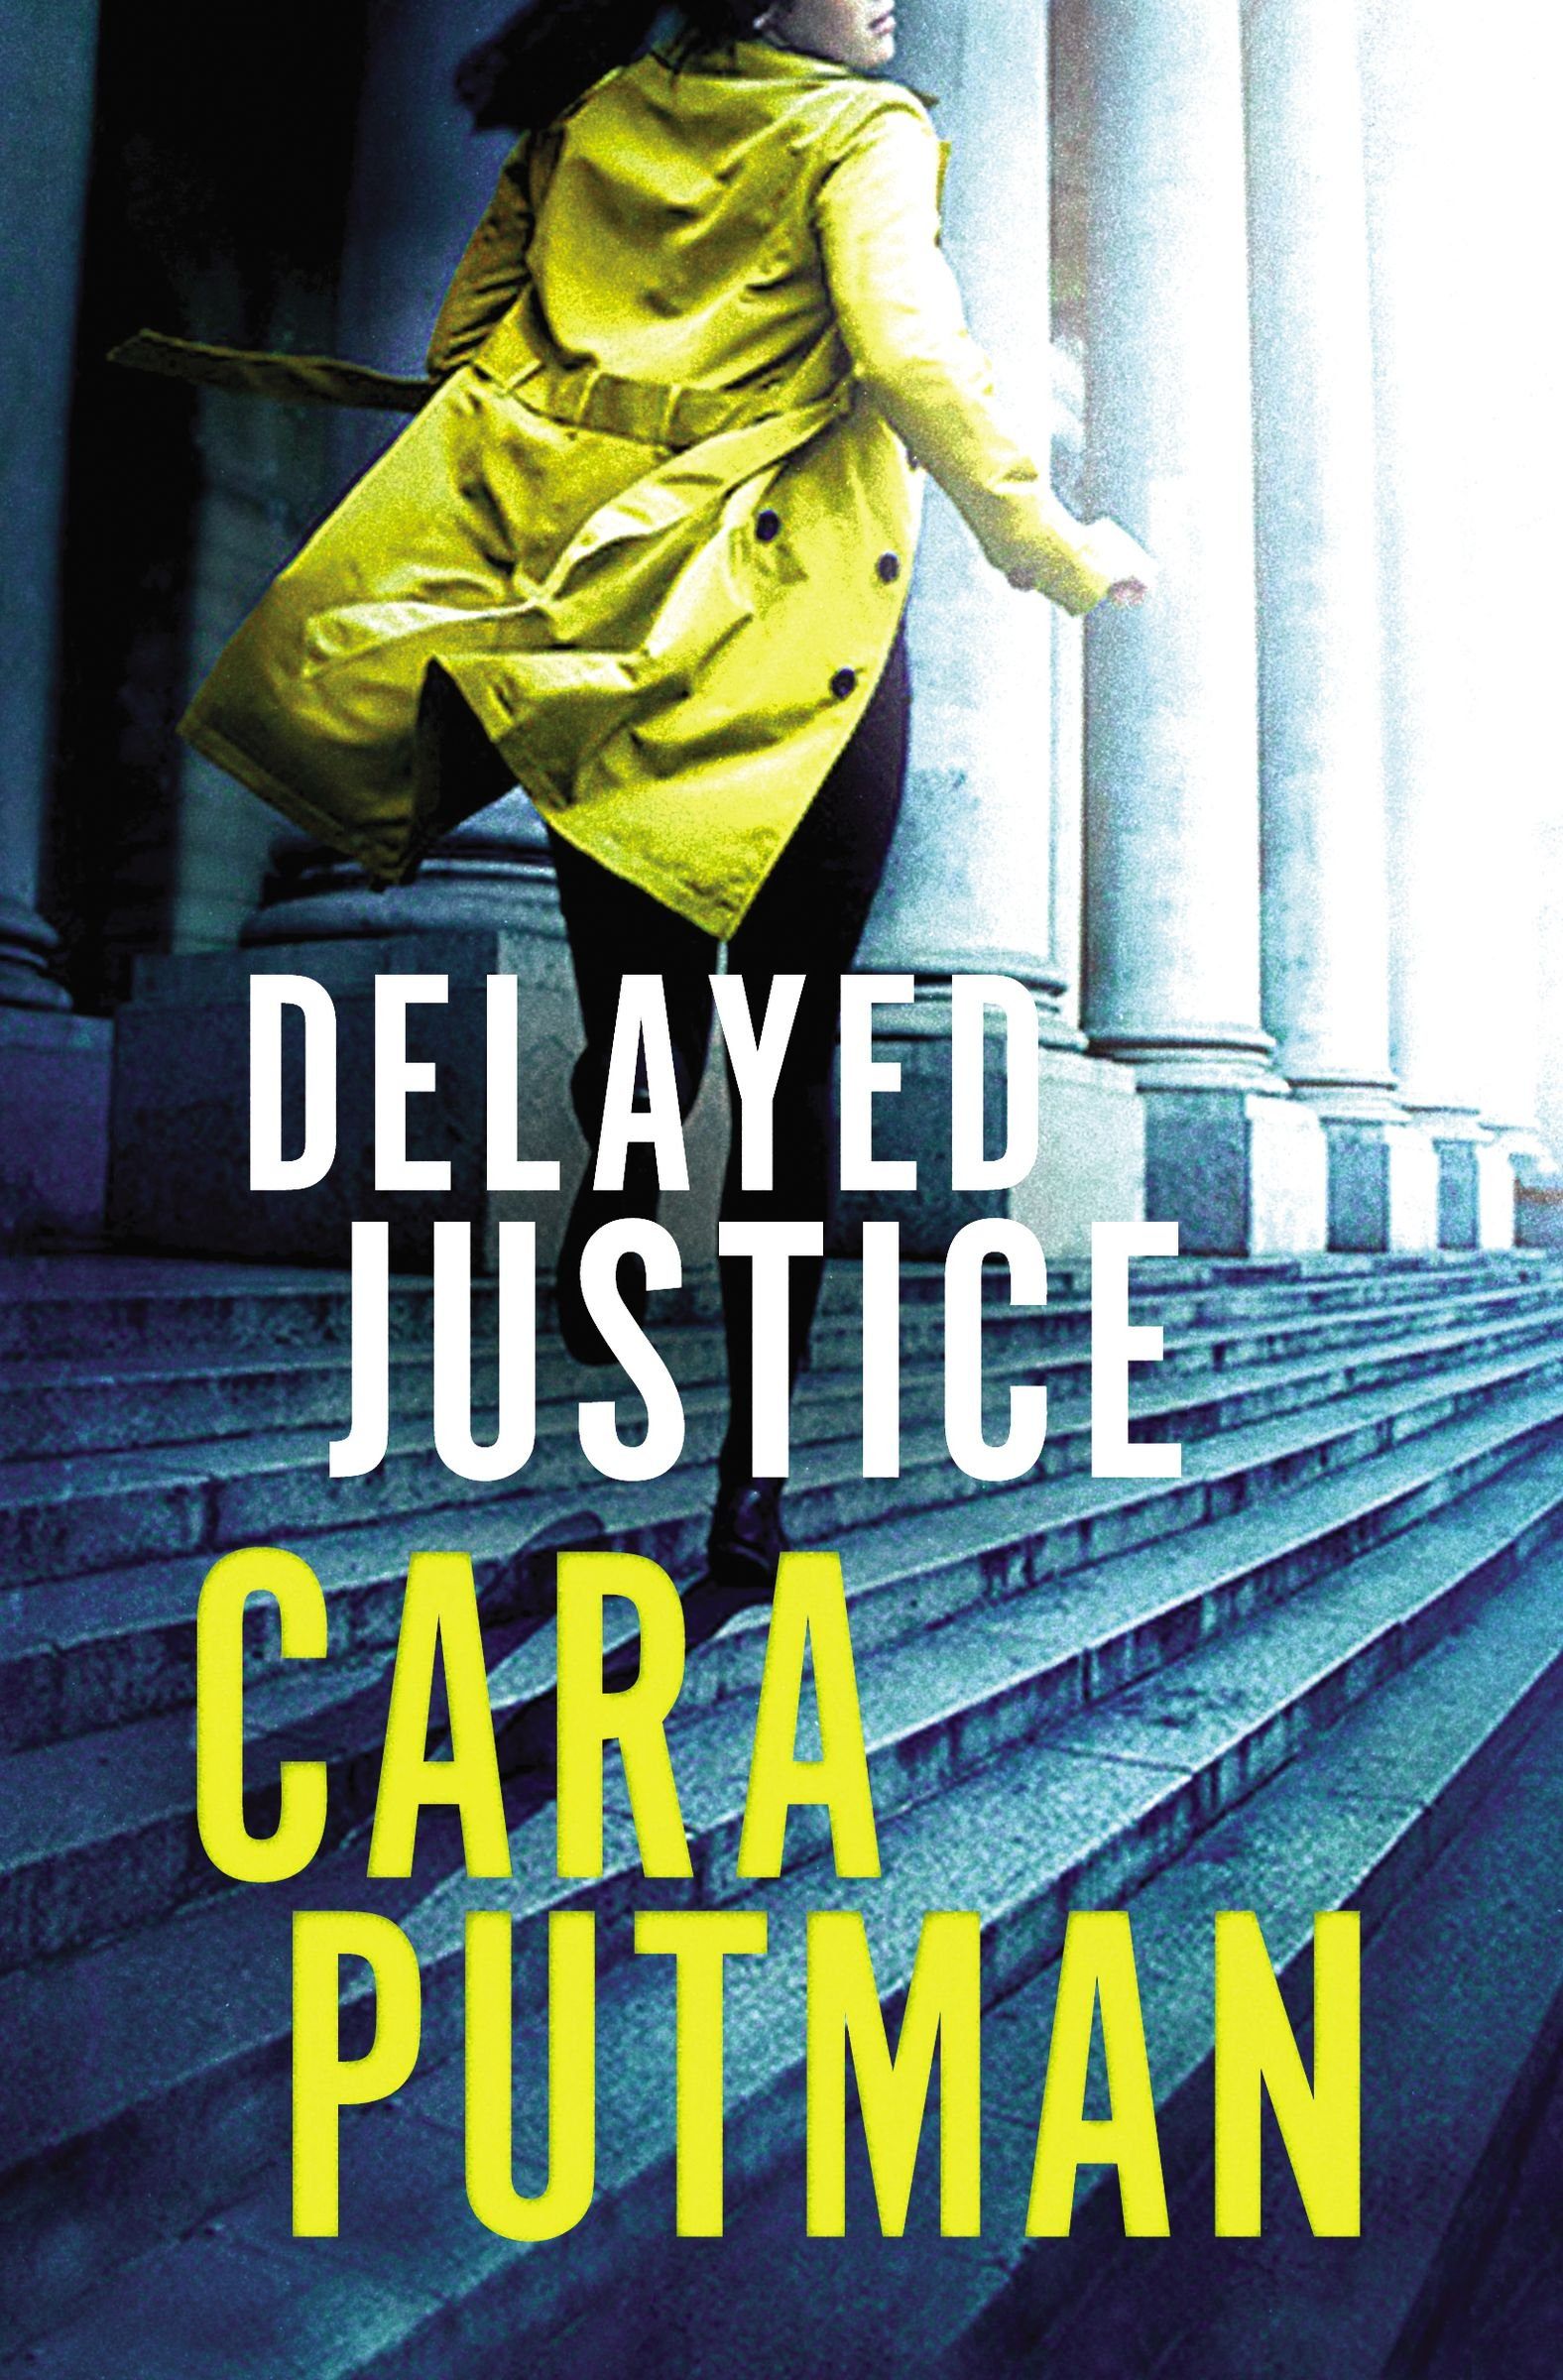 Image result for delayed justice cara putman